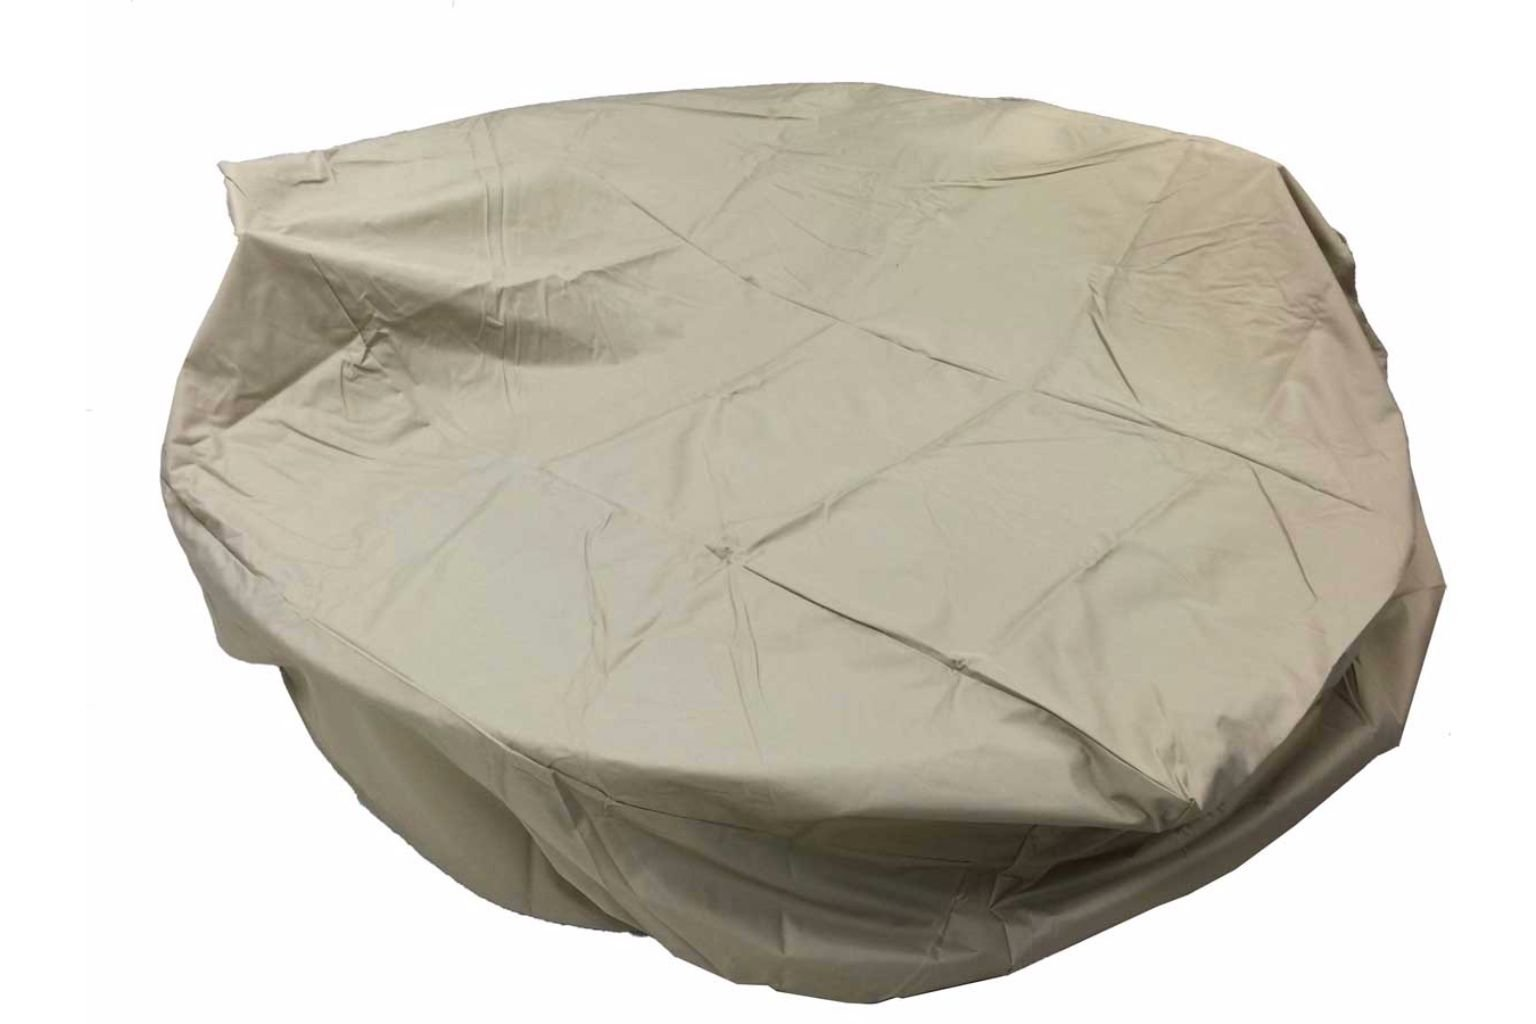 Dola Outdoor Round Dining Patio Furniture Cover in Beige All Weather Patio Furniture Round Cover Rain Proof 3-Layers Thick Fits Up To 90 X 31.5 inches by DOLA